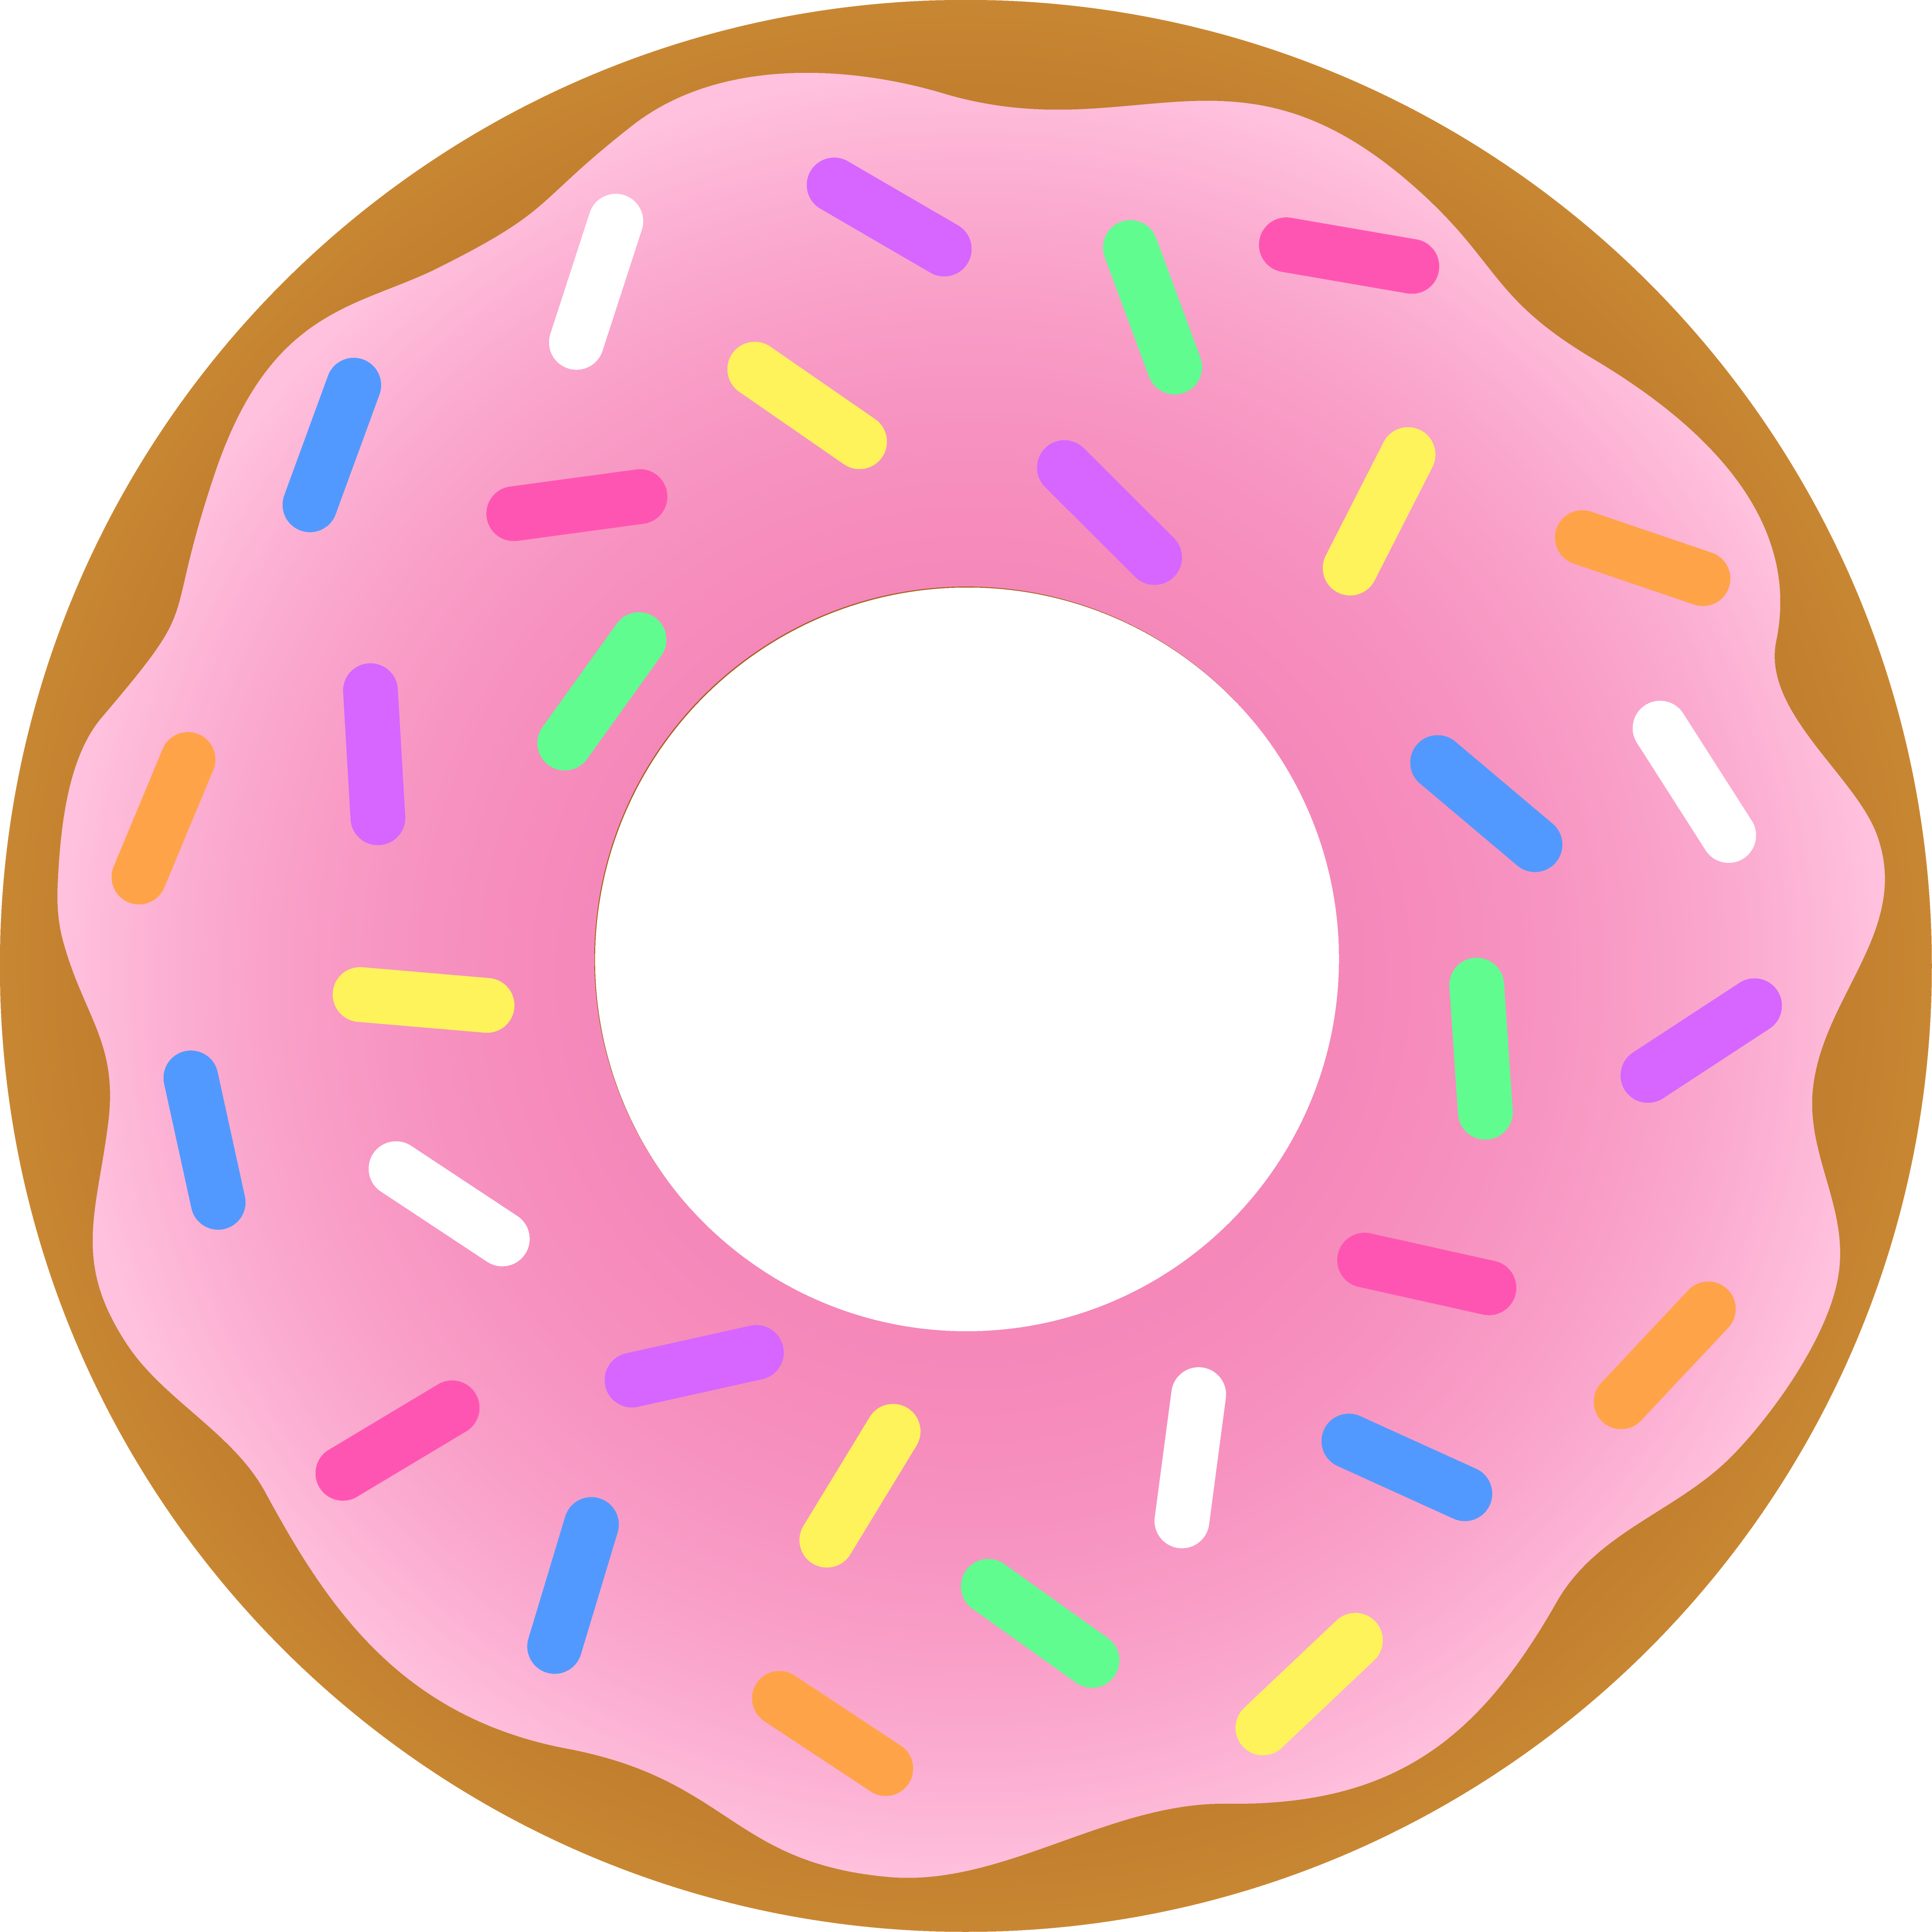 Coffee and donuts clipart free images